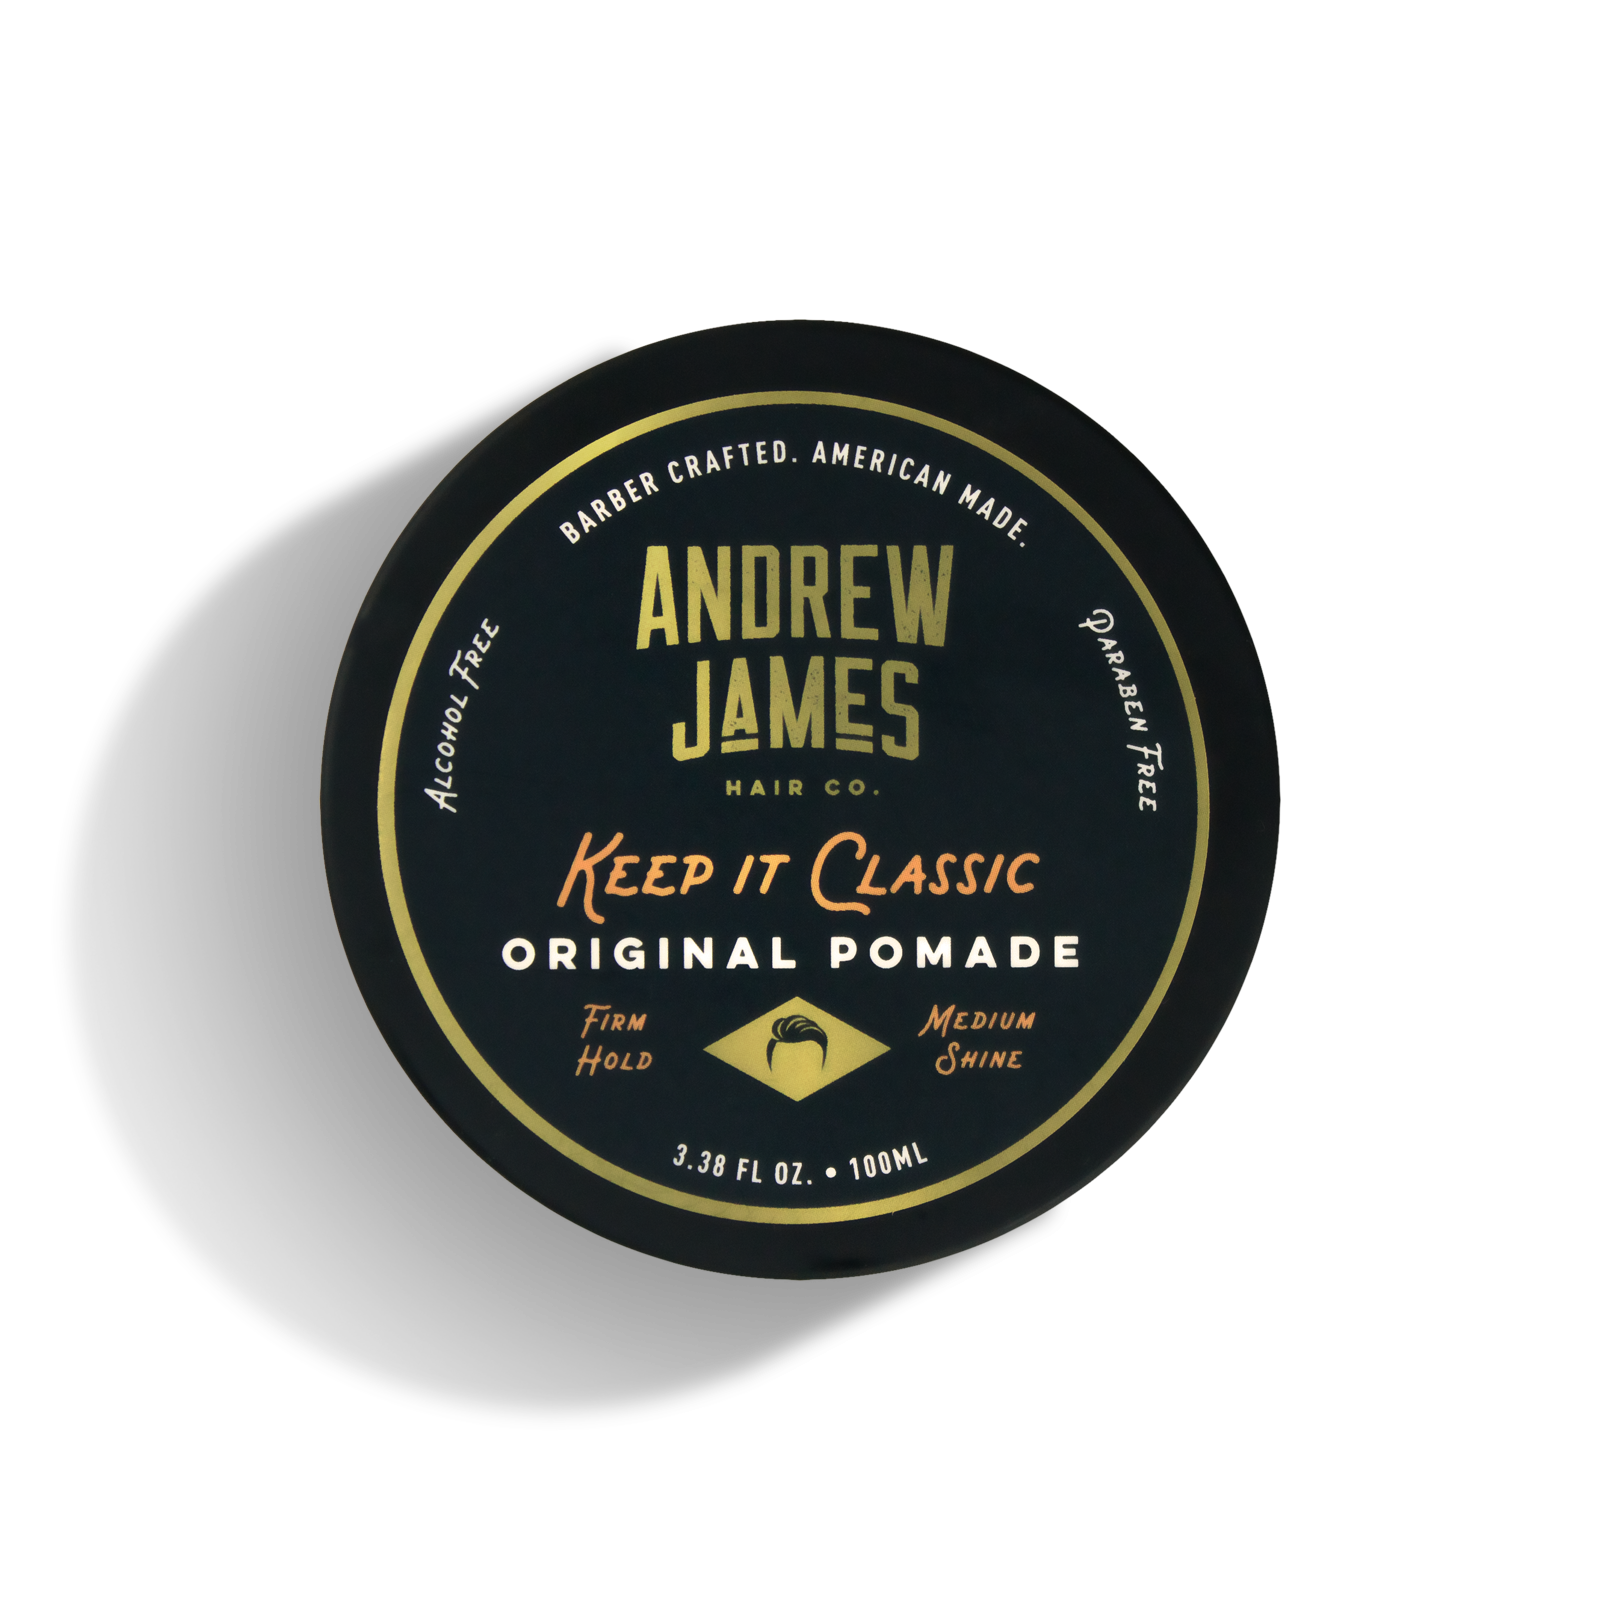 Andrew-James-Keep-It-Classic-Pomade-Top-View